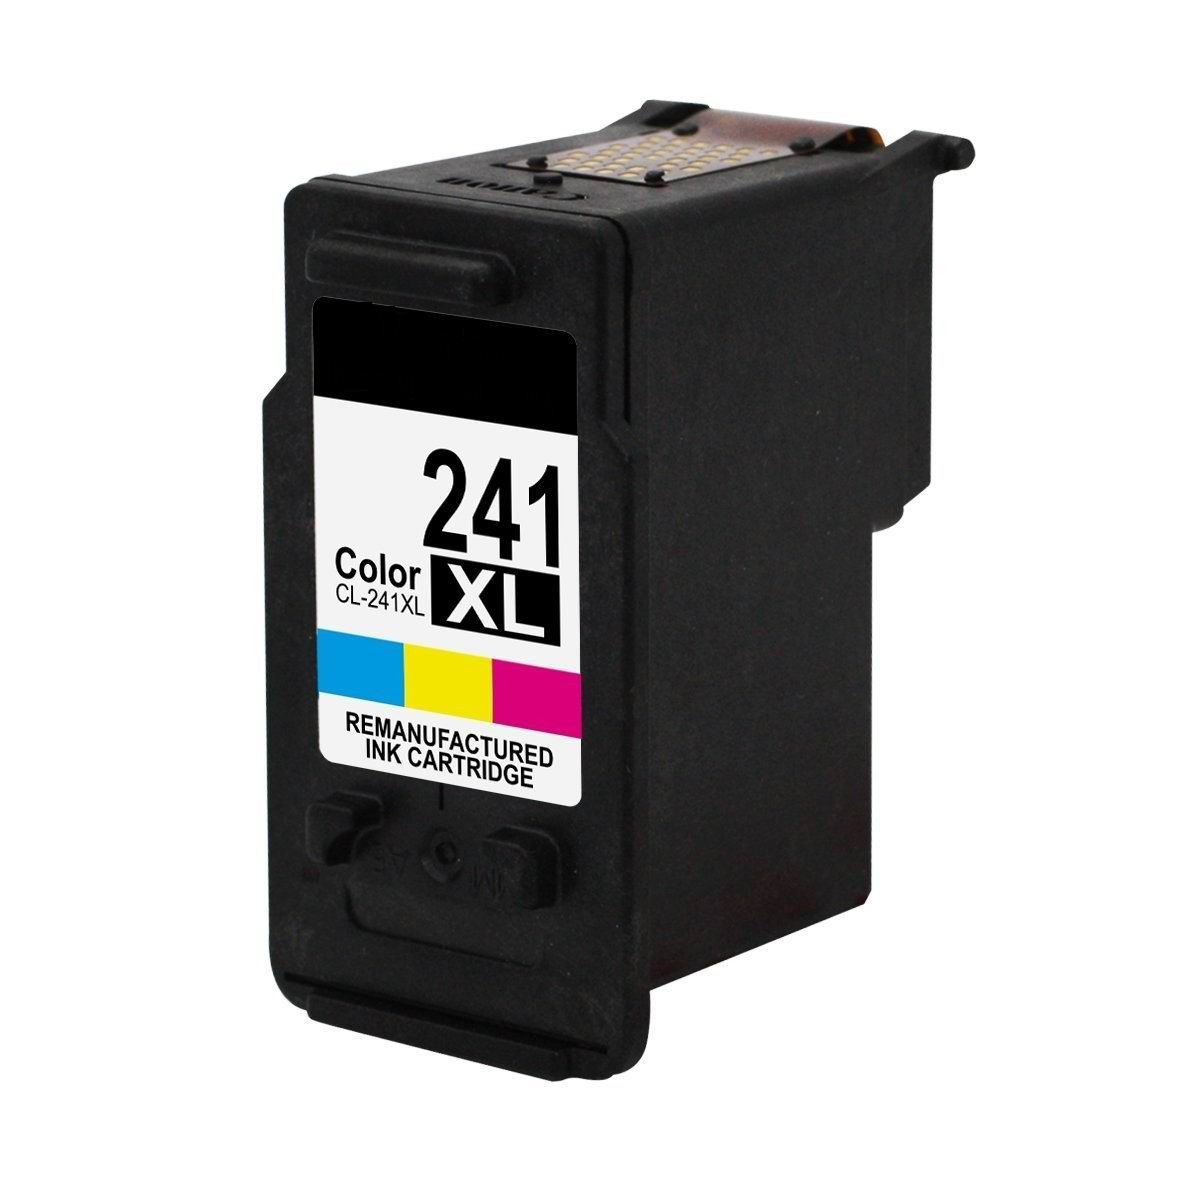 Remanufactured Canon CL 241 XL Color Ink Cartridge